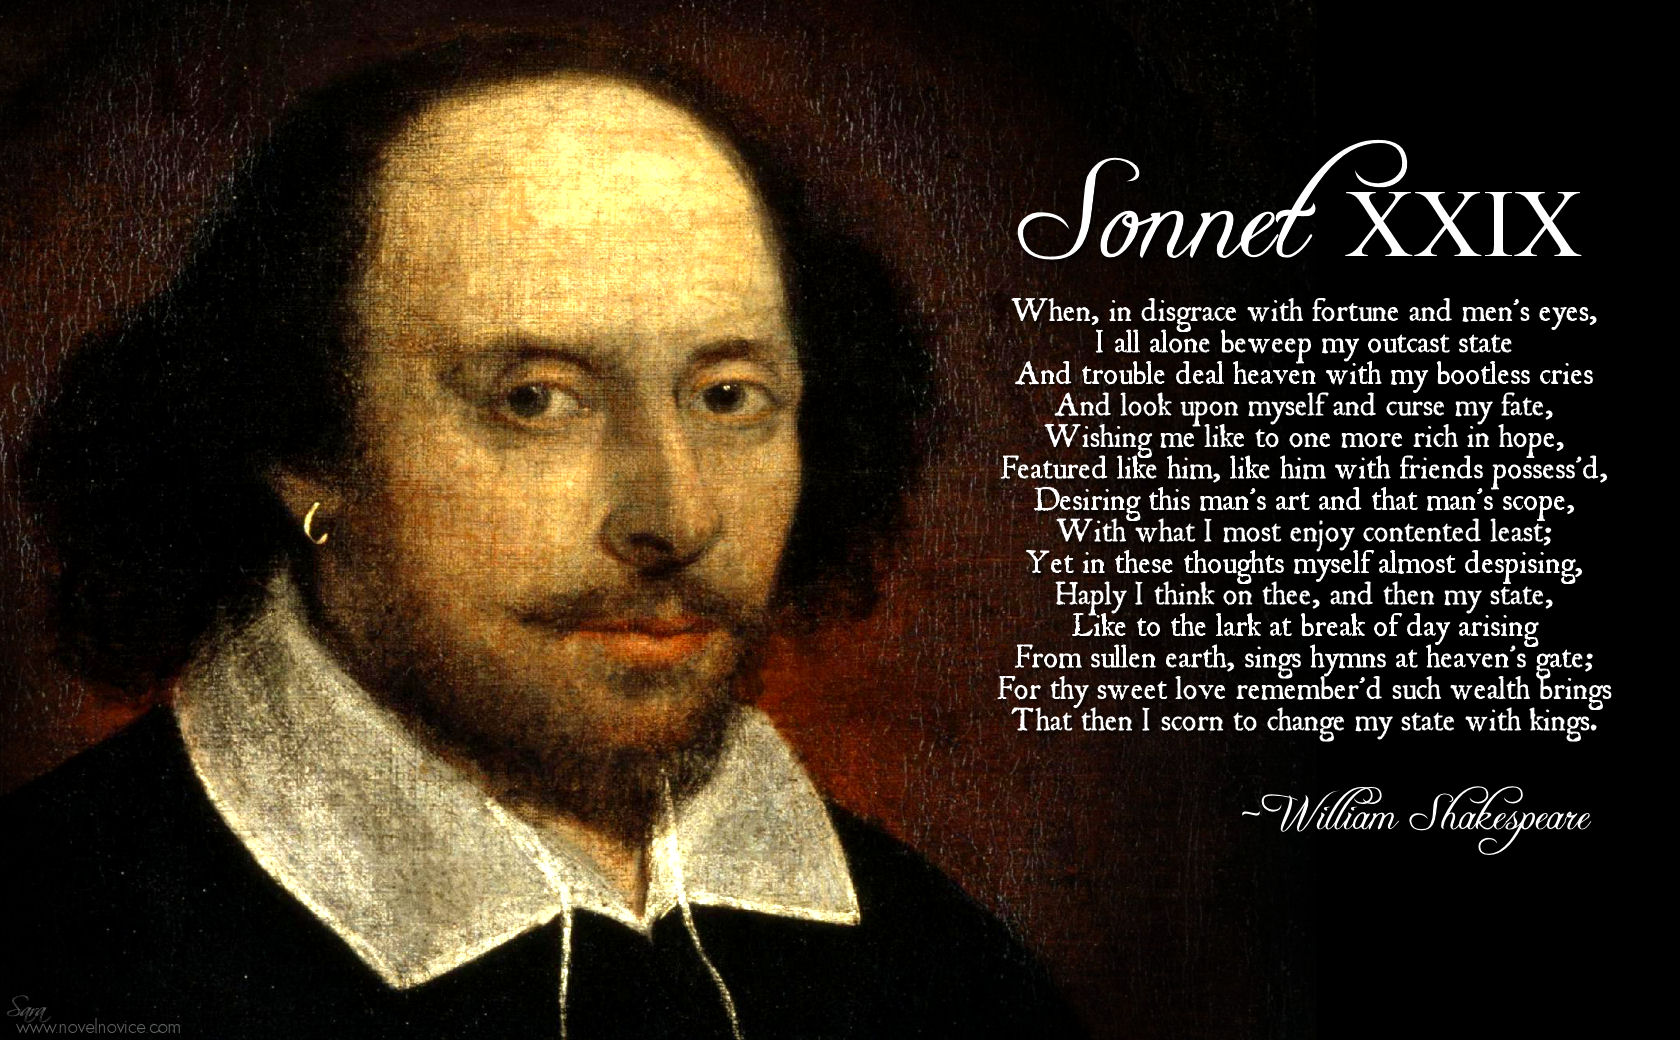 shakespeare sonnet 29 What is the main metaphor for shakespeare sonnet 29 i have no clue what the metaphor is can anyone help.